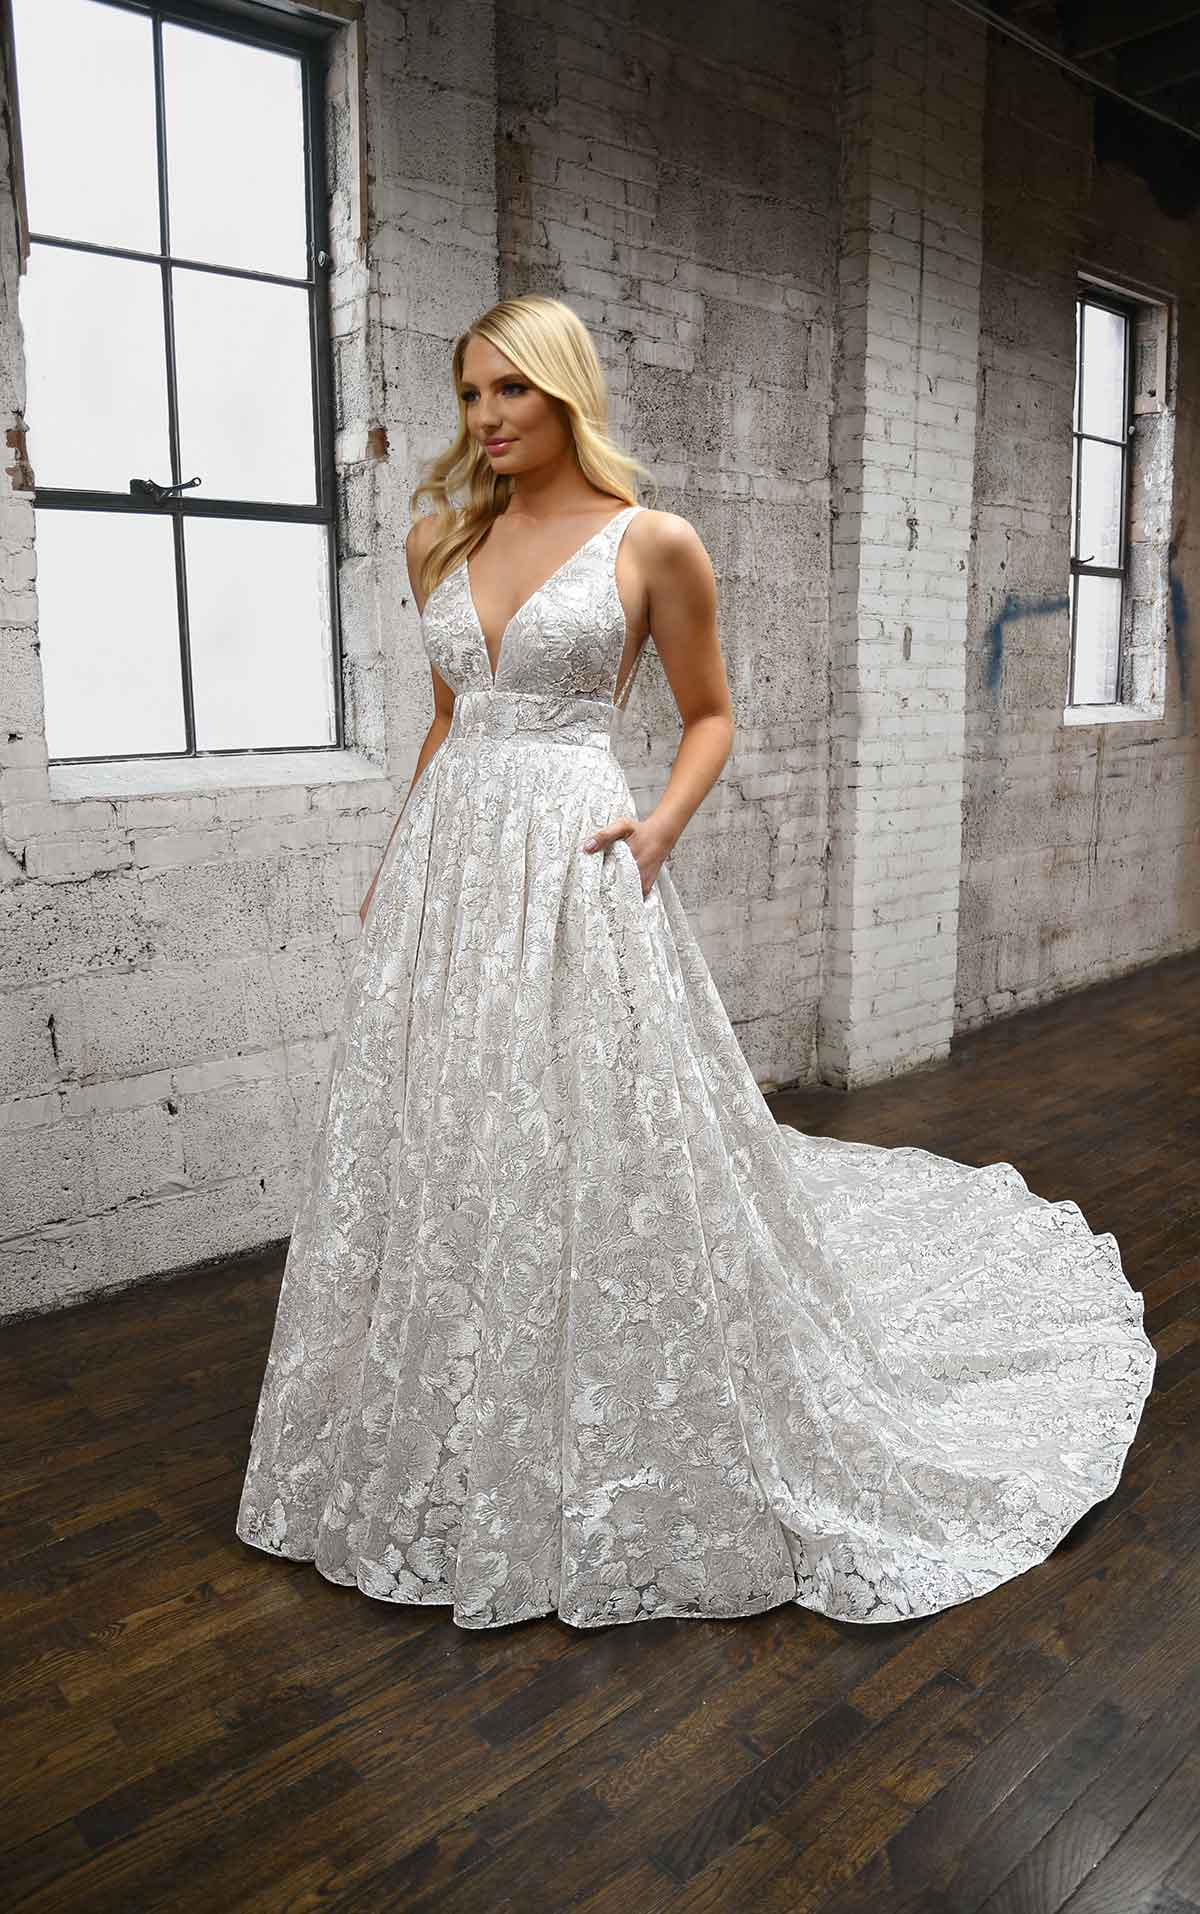 1373 Floral Lace Wedding Dress with Back Strap Detail by Martina Liana